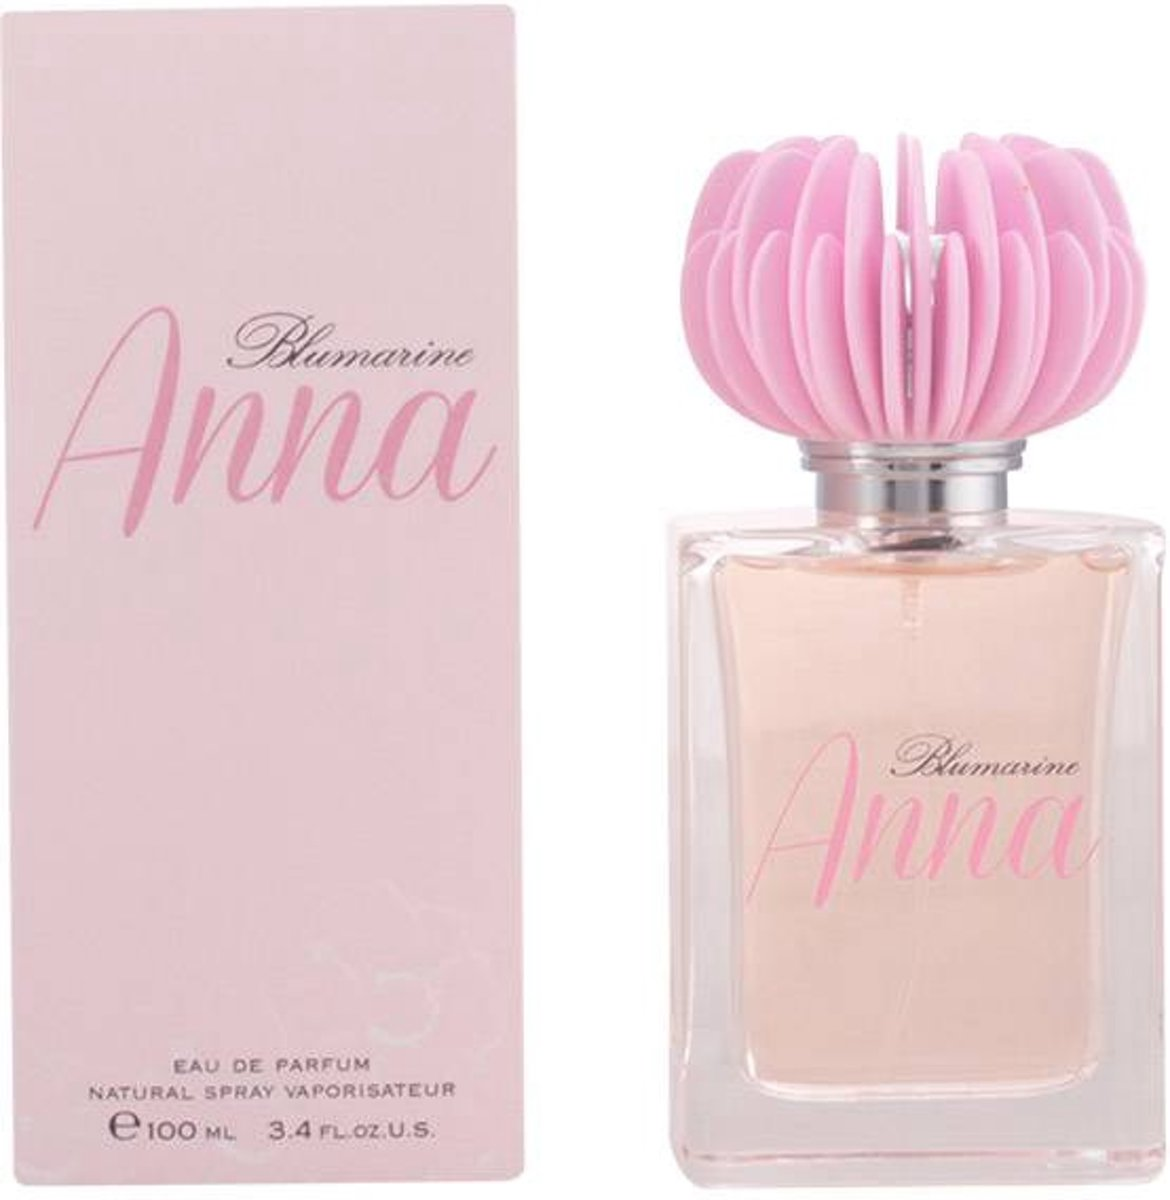 Blumarine ANNA eau de parfum spray 100 ml